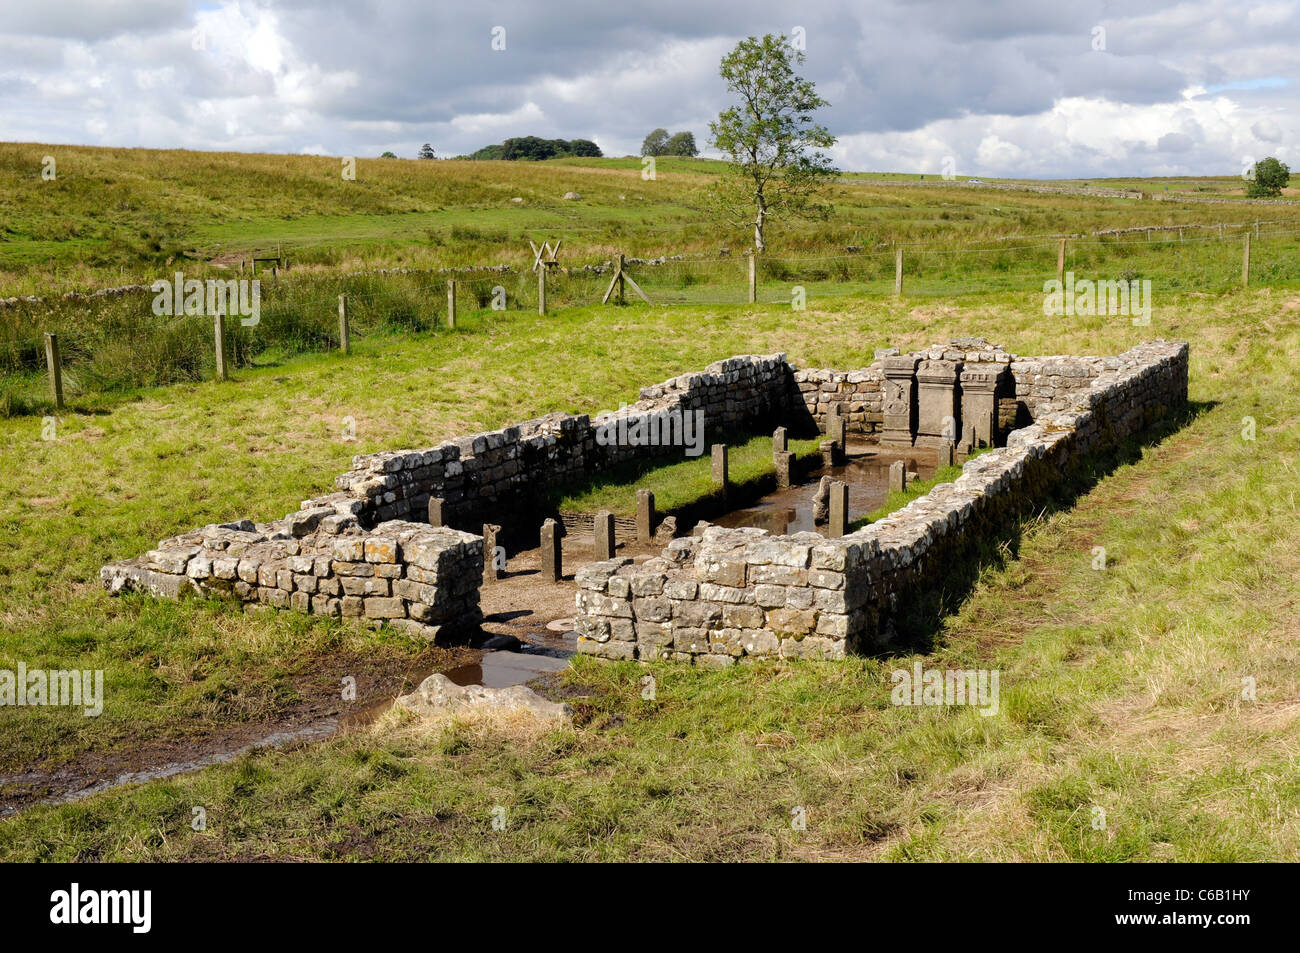 Temple of Mithras, Carrawburgh, Hardian's Wall - Stock Image